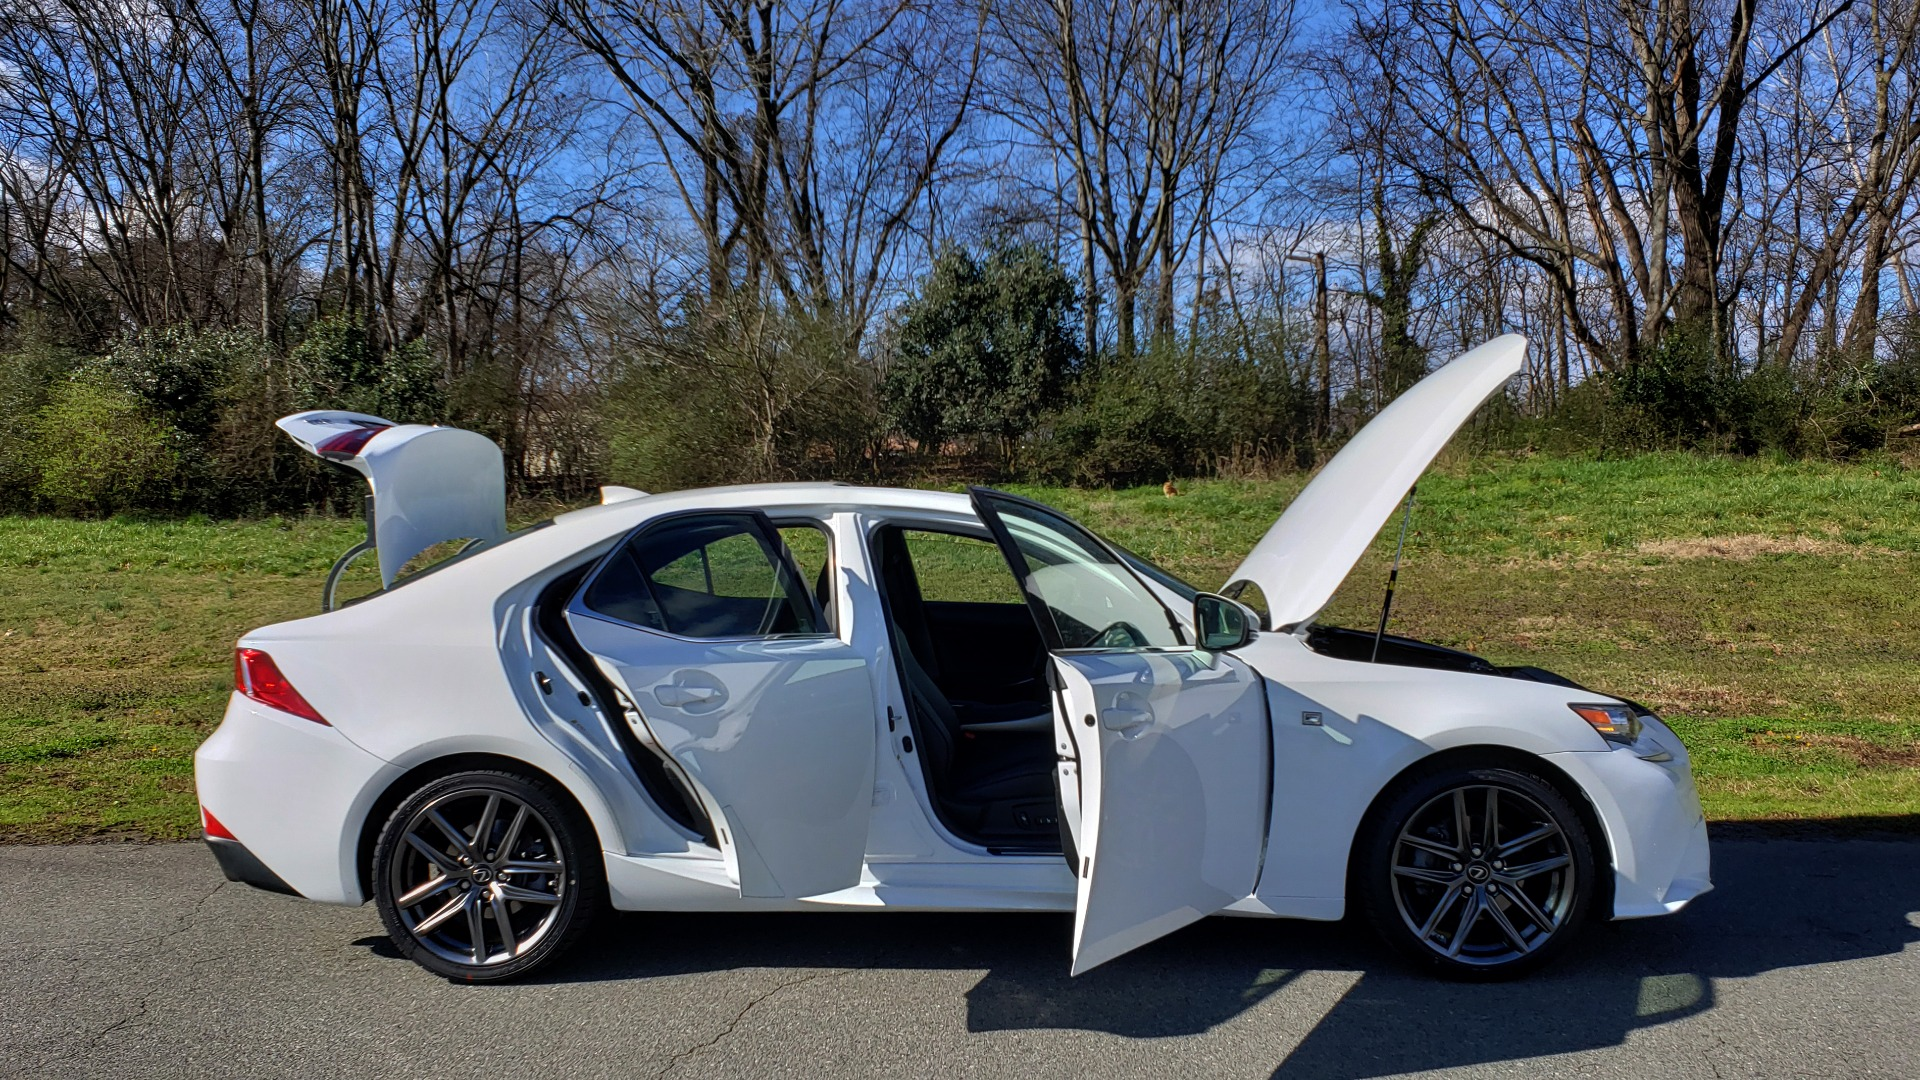 Used 2014 Lexus IS 250 F-SPORT / NAV / SUNROOF / REARVIEW / BSM for sale Sold at Formula Imports in Charlotte NC 28227 10